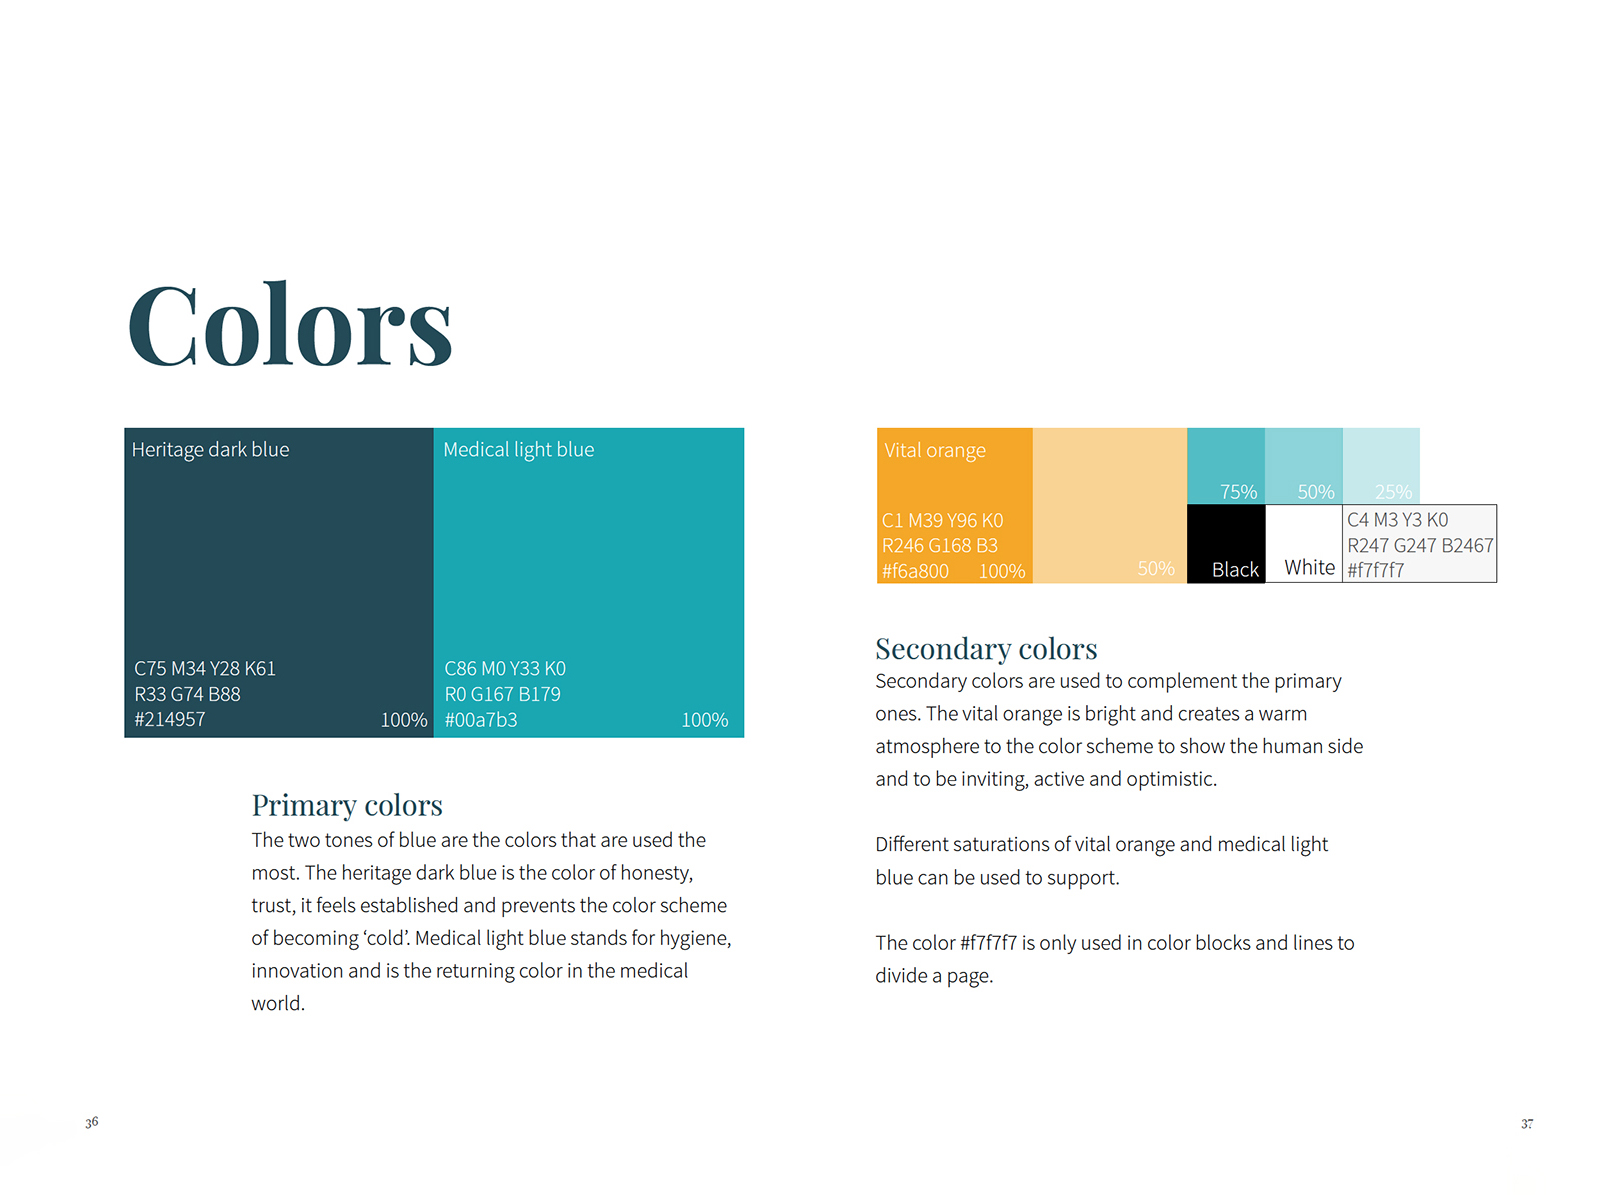 colors-brandguide-incision-marketing-schmarketing.jpg